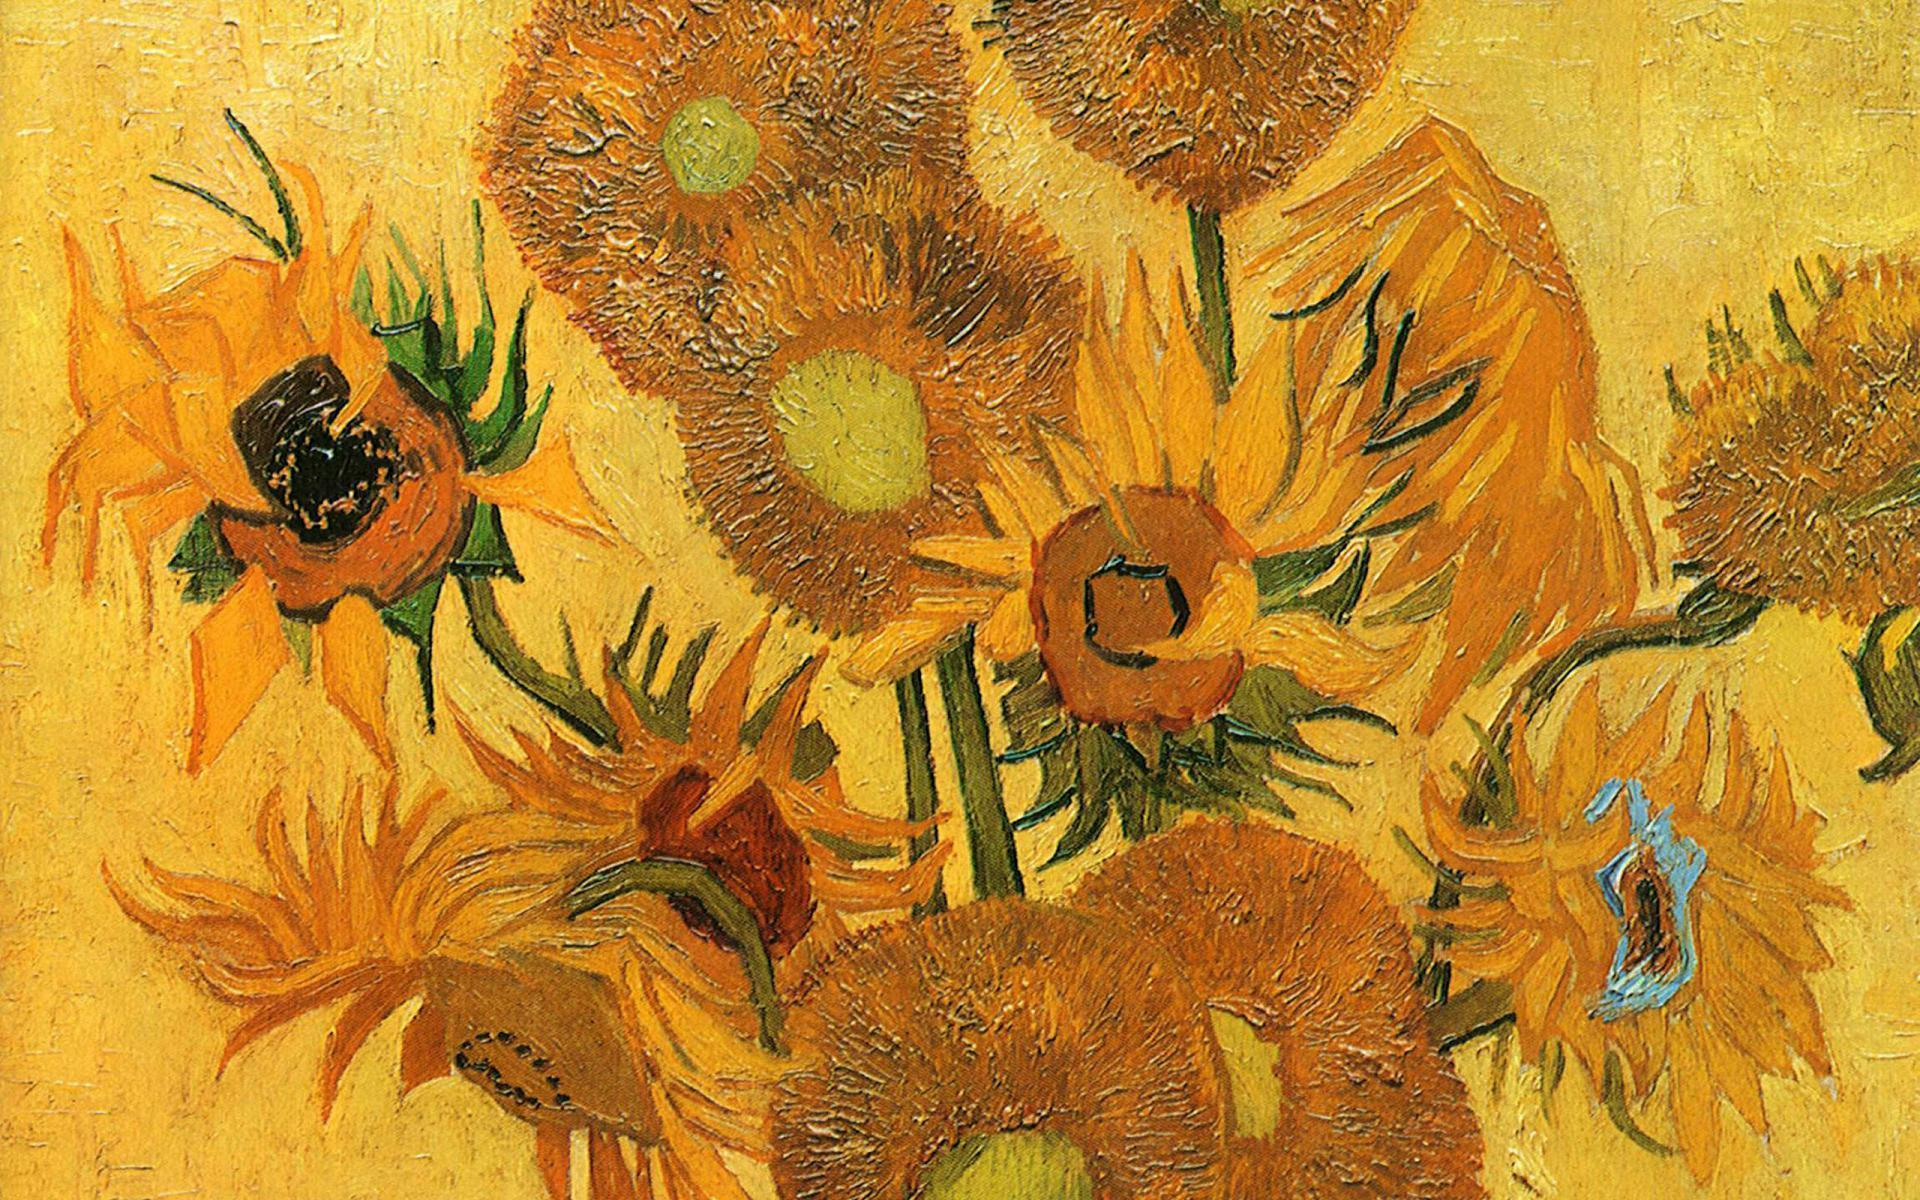 Cuadros De Bango Vincent Van Gogh Wallpapers Wallpaper Cave